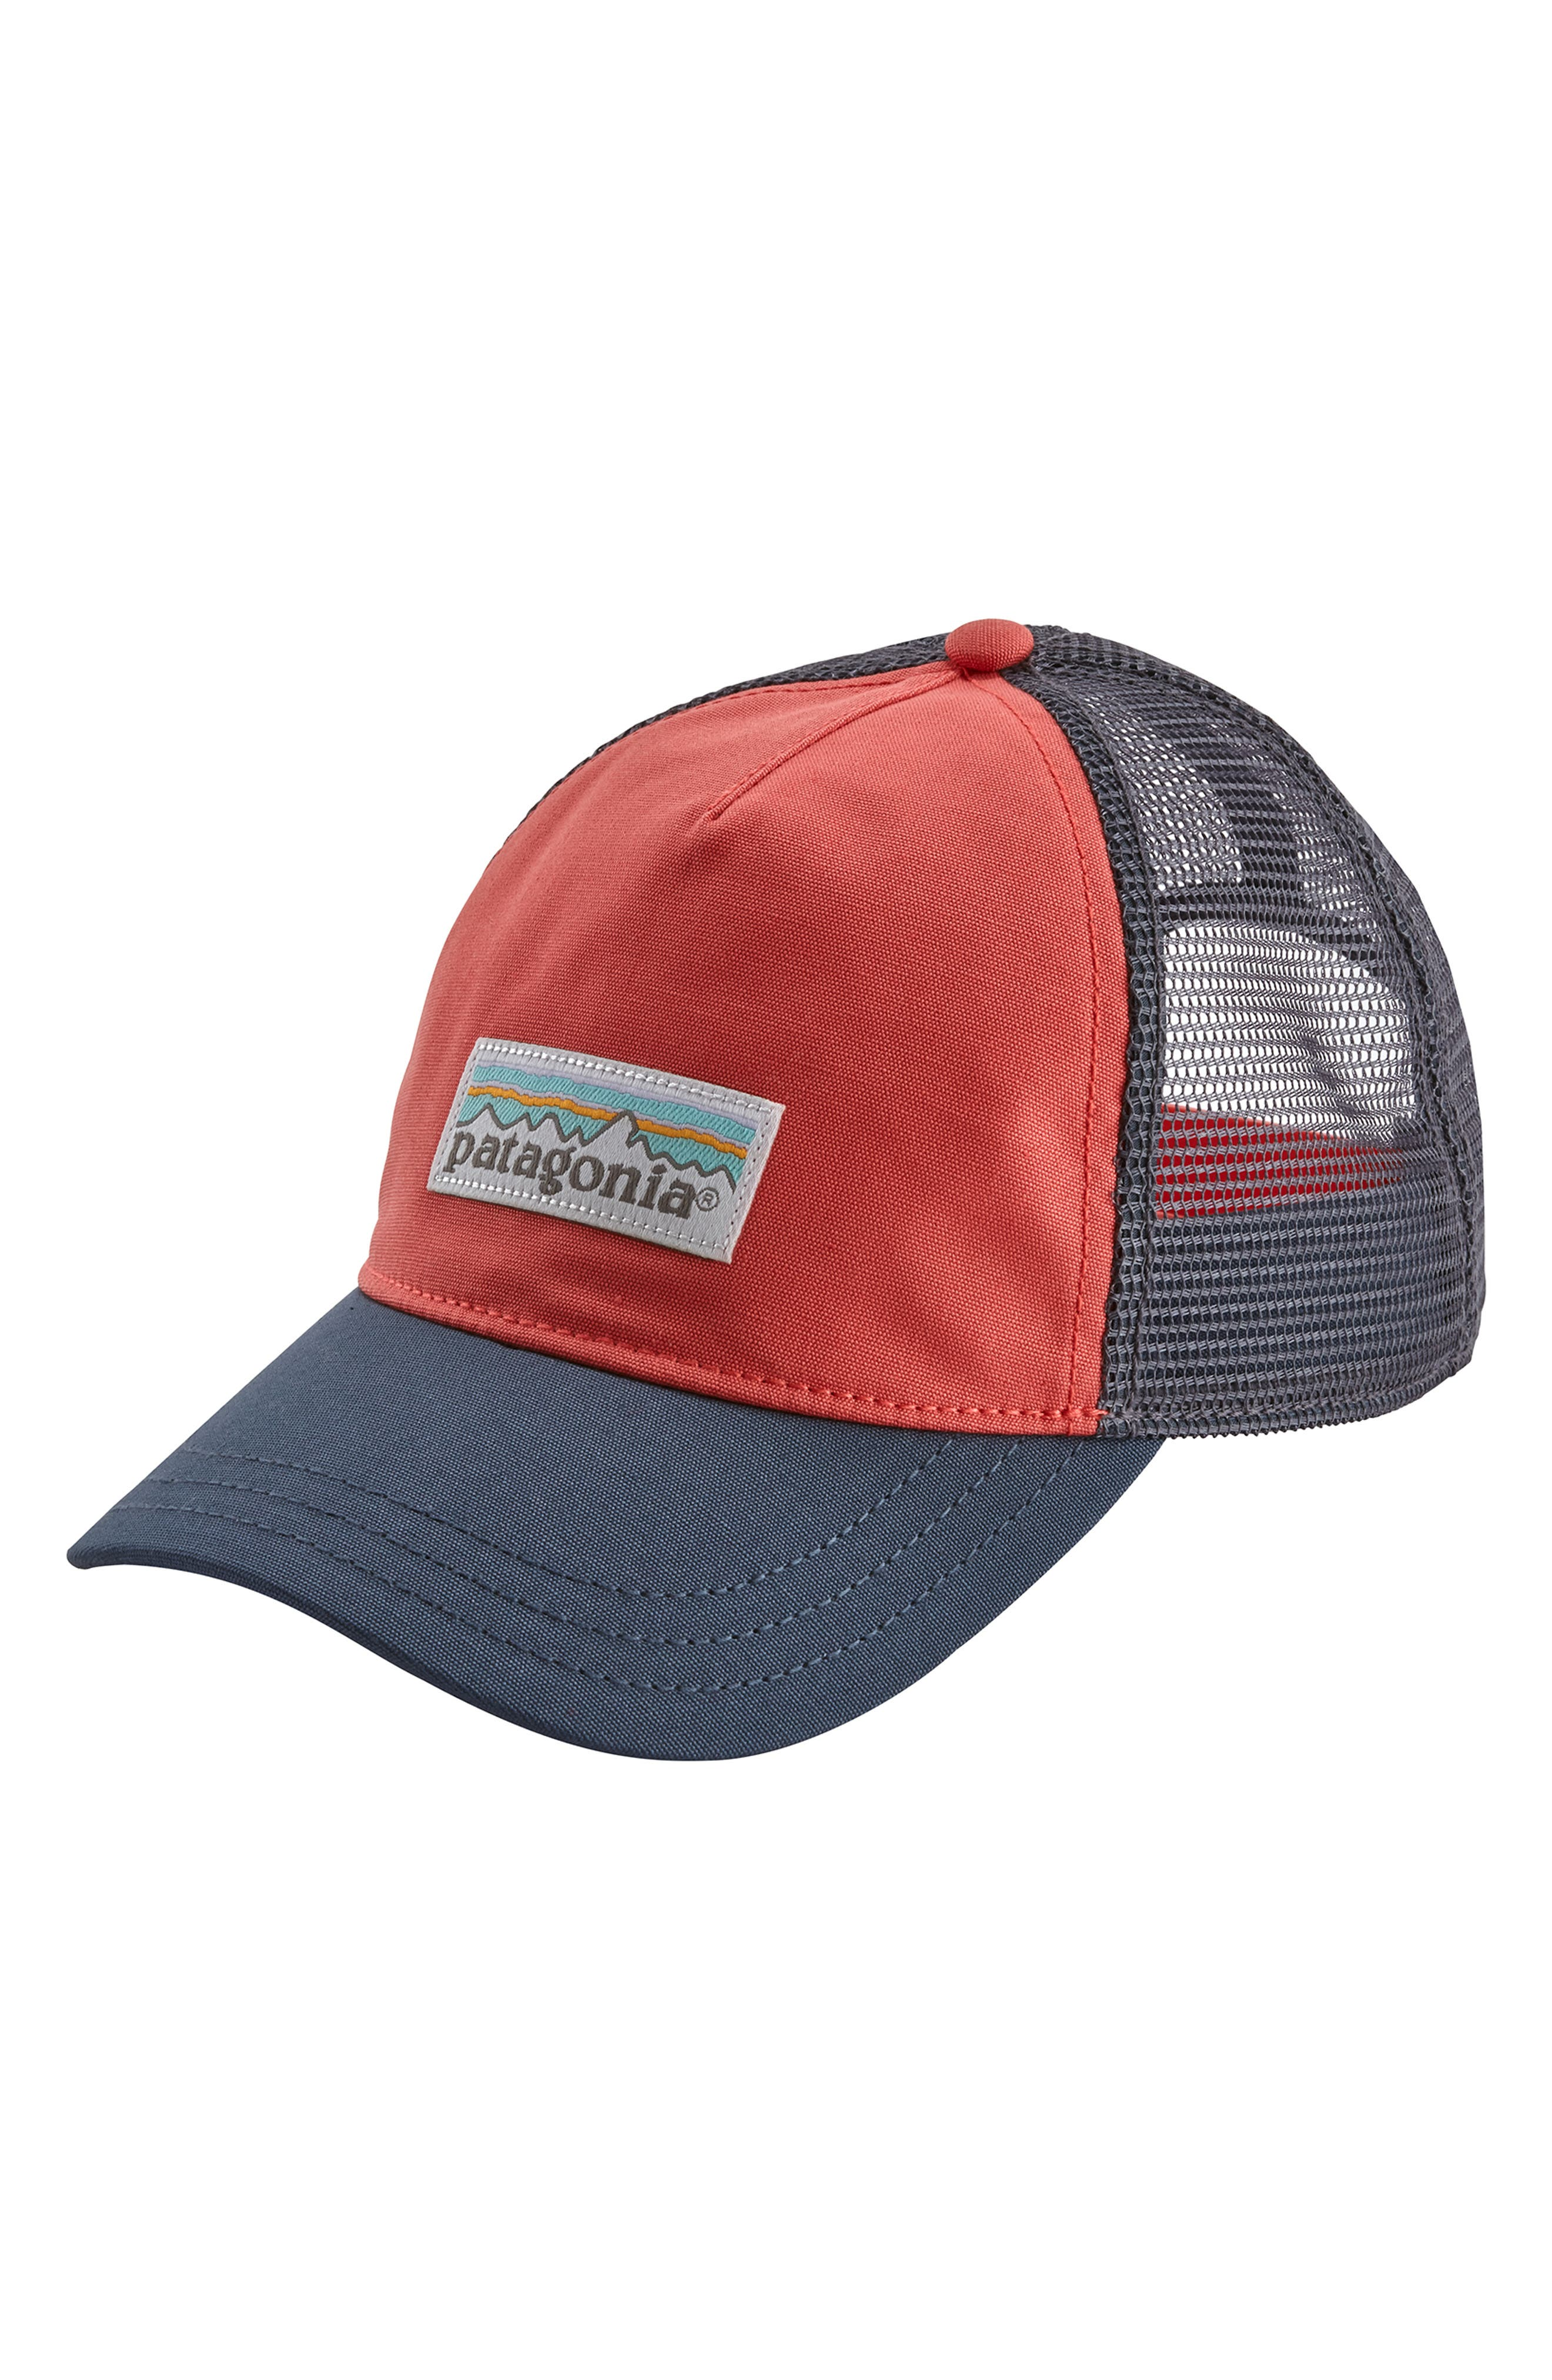 59afa3862c5ae Red Hats for Women